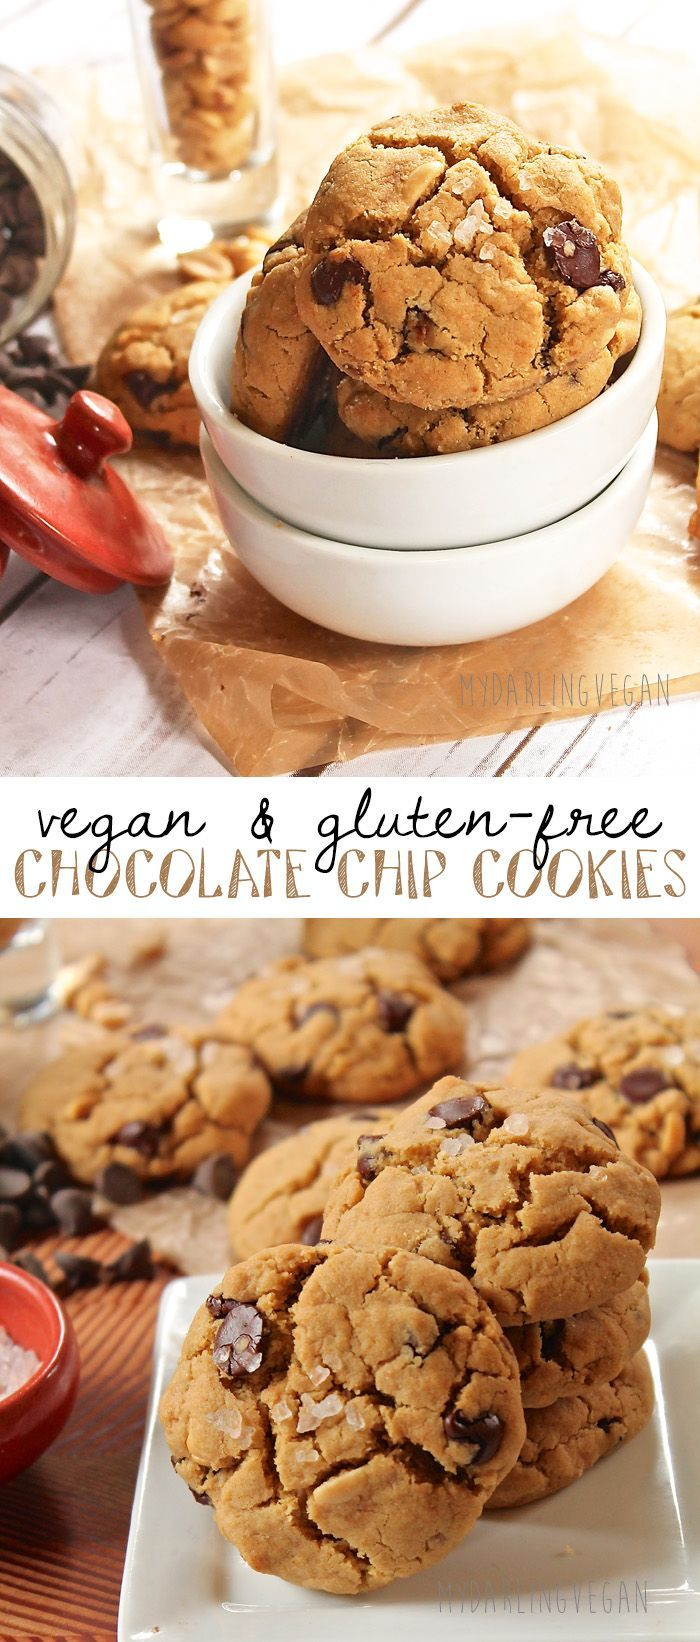 These vegan salted chocolate chip cookies are made with quinoa flour for a easy and delicious gluten-free version of this classic cookie. Click the picture for the full recipe.